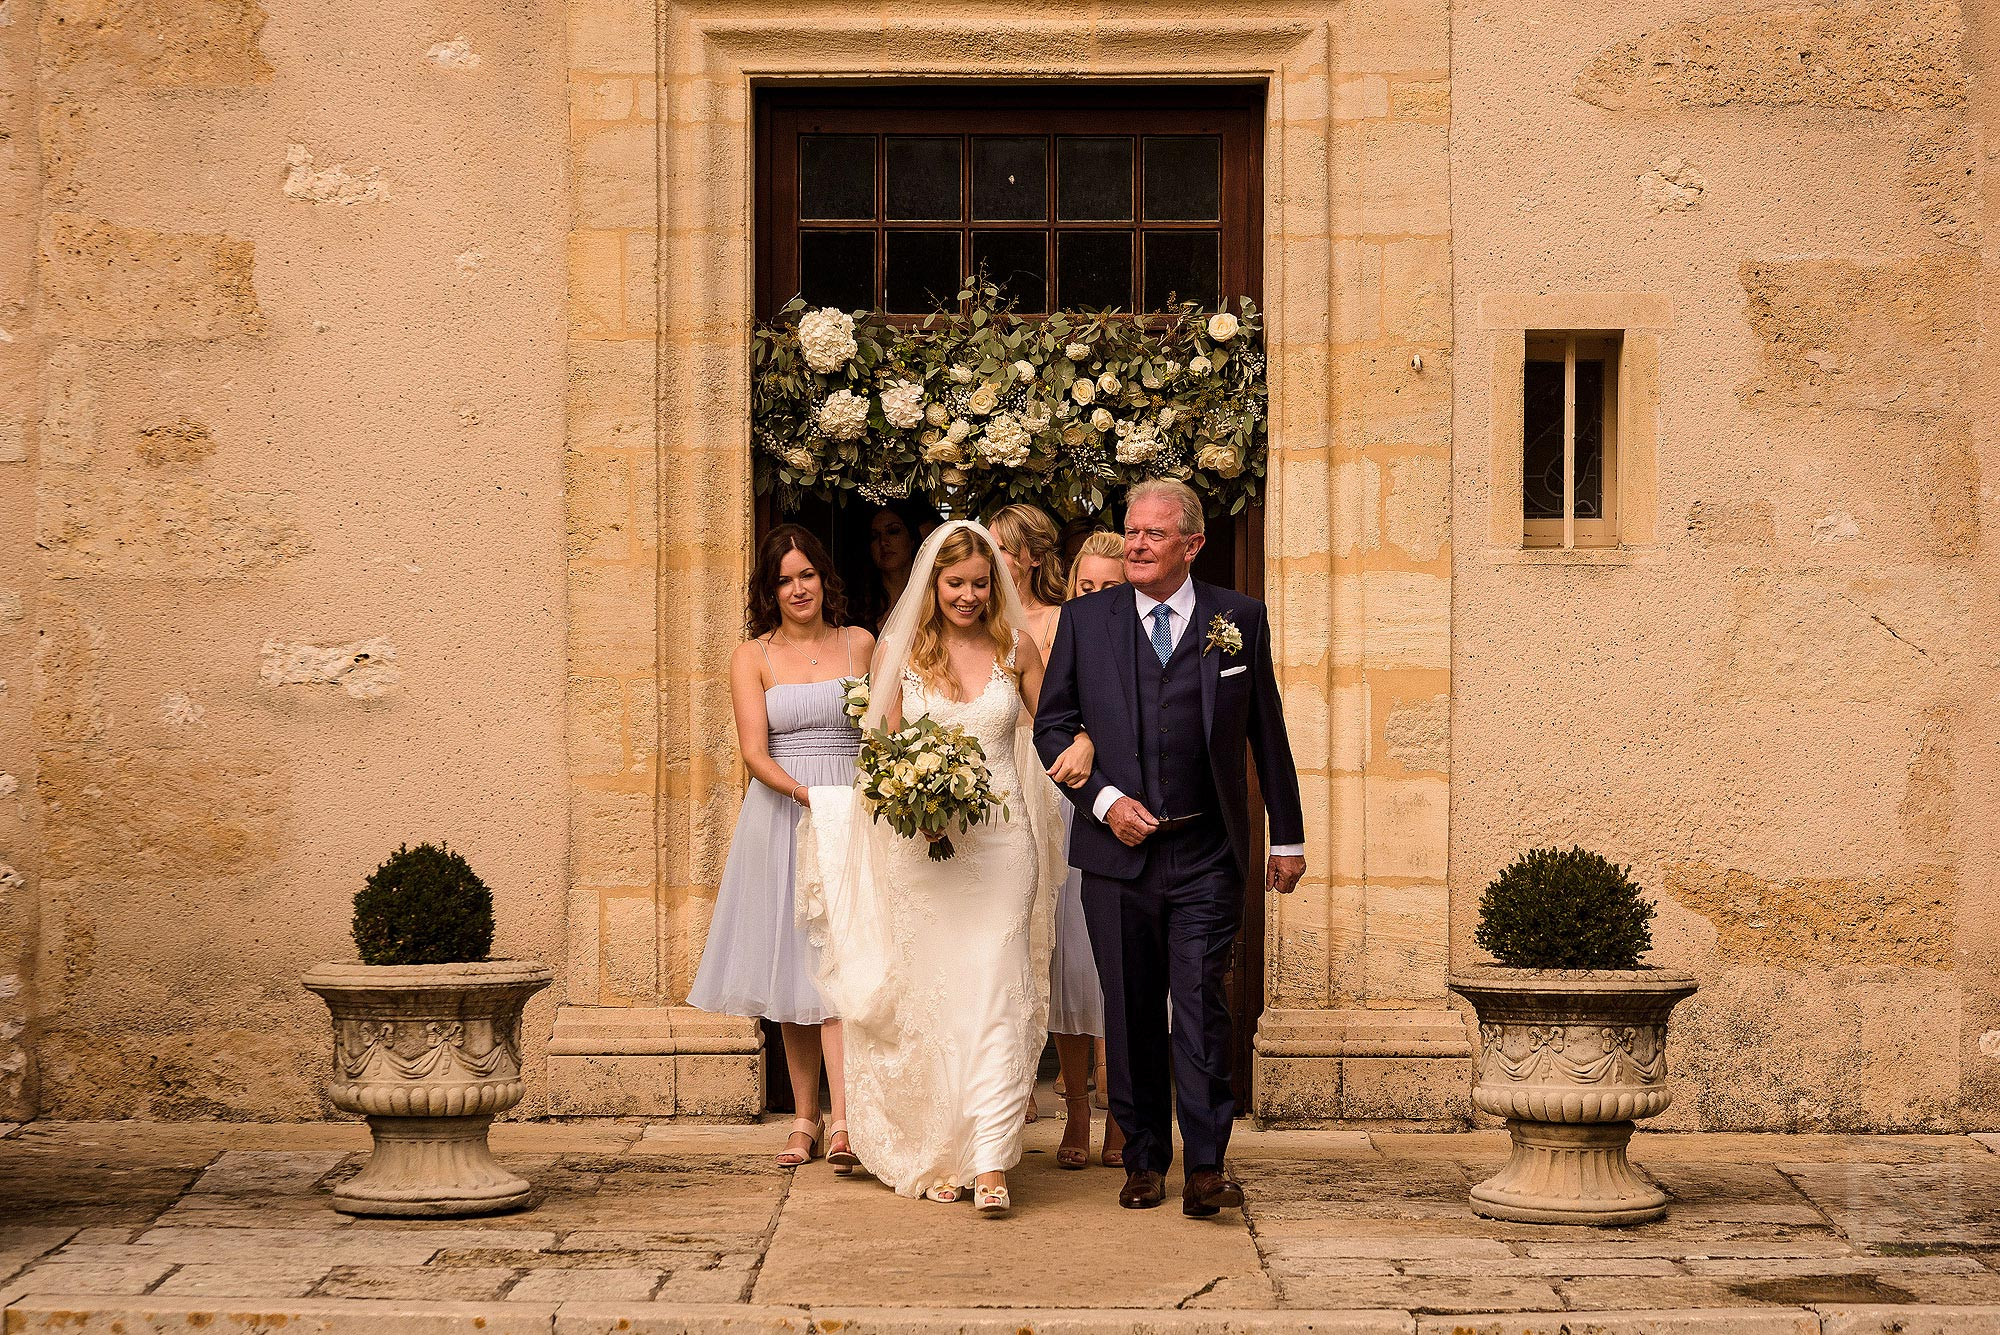 bridal party walking to wedding ceremony at Chateau Soulac in France